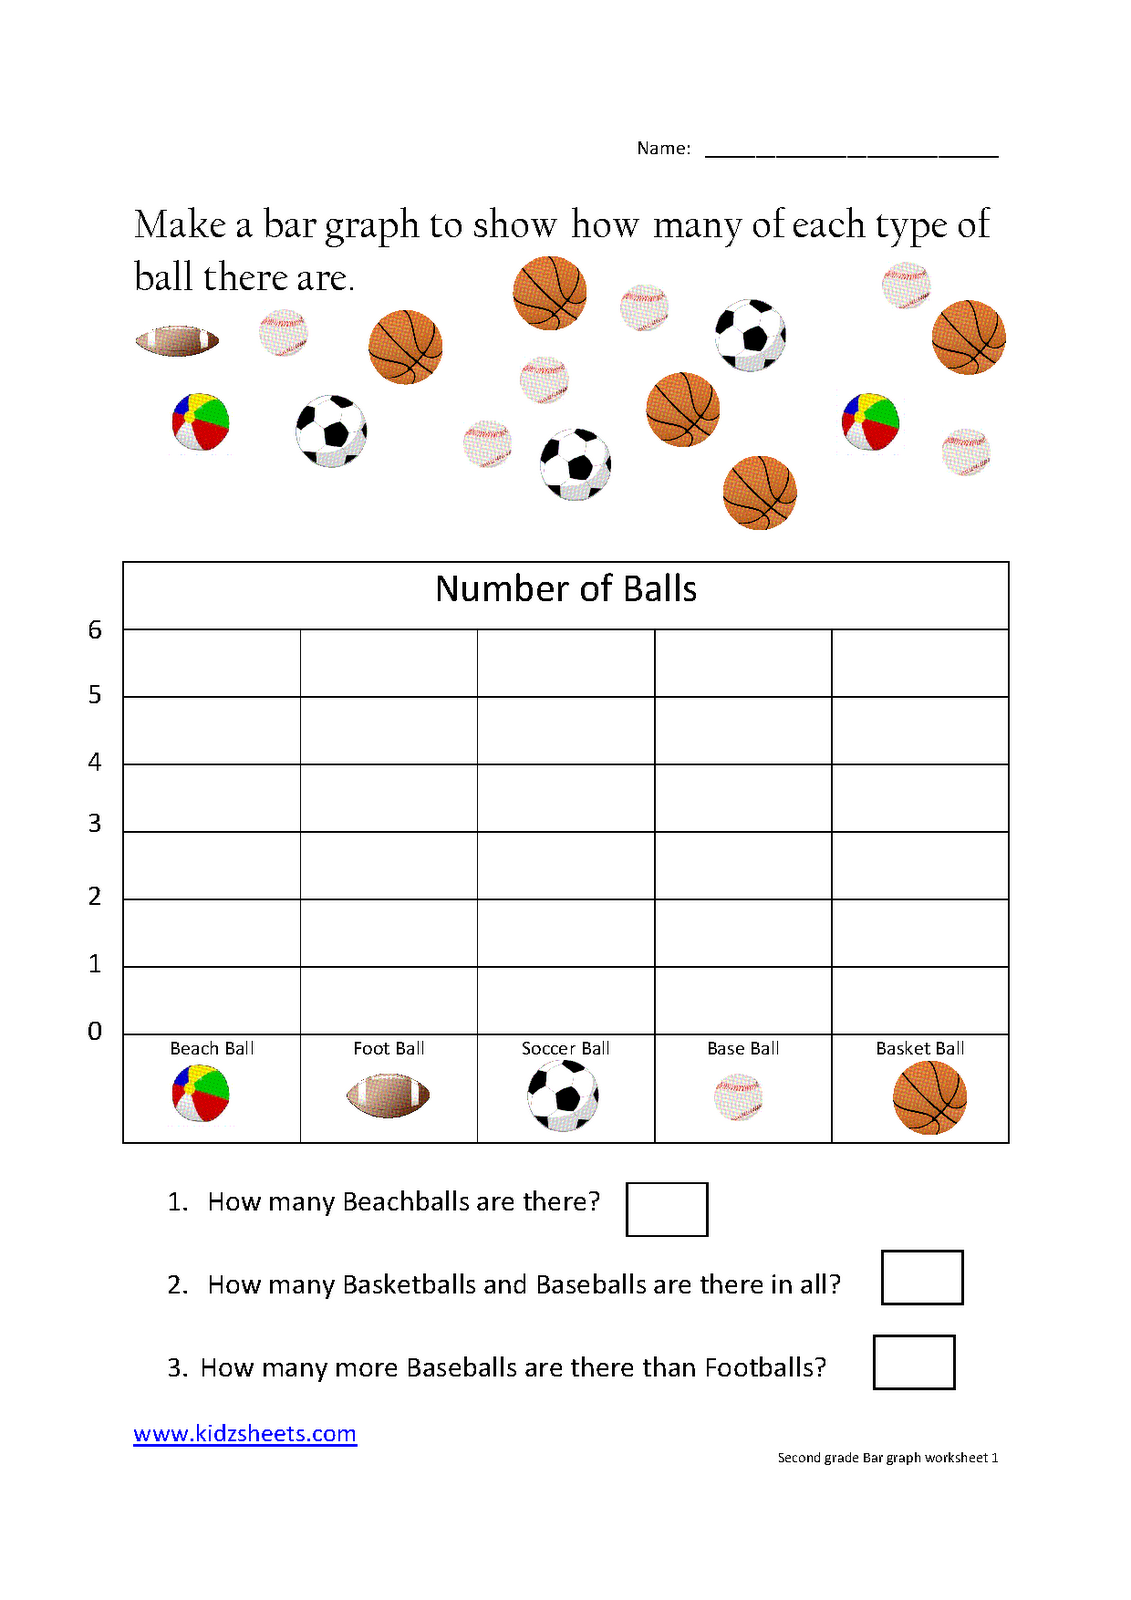 Worksheets Graphing Worksheets For Preschoolers kidz worksheets second grade bar graph worksheet1 graph